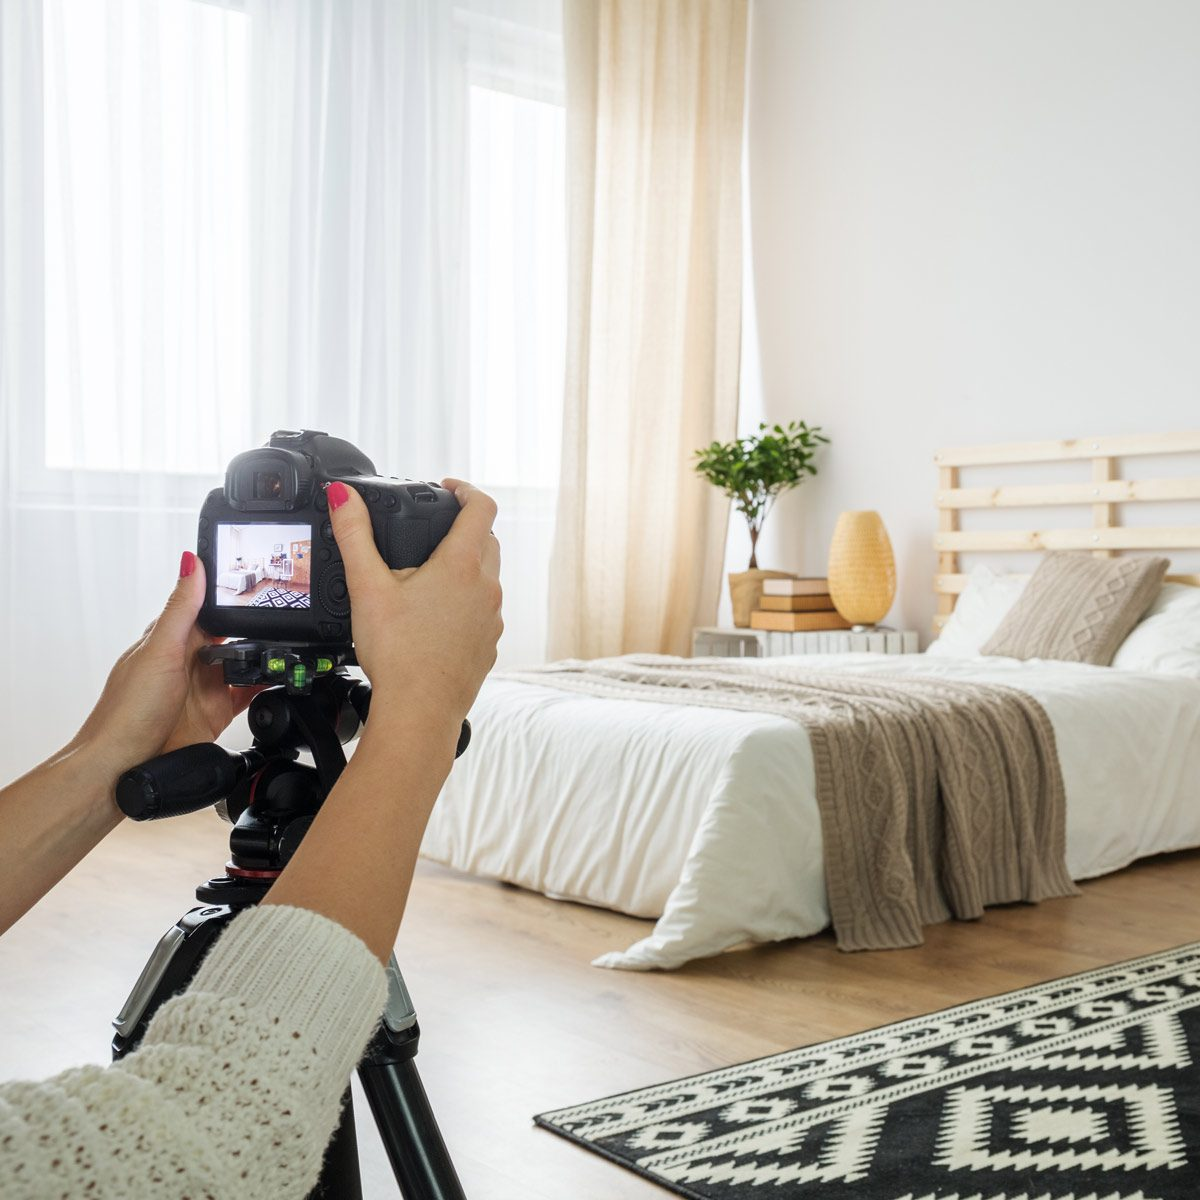 Woman takes a photo of a bedroom